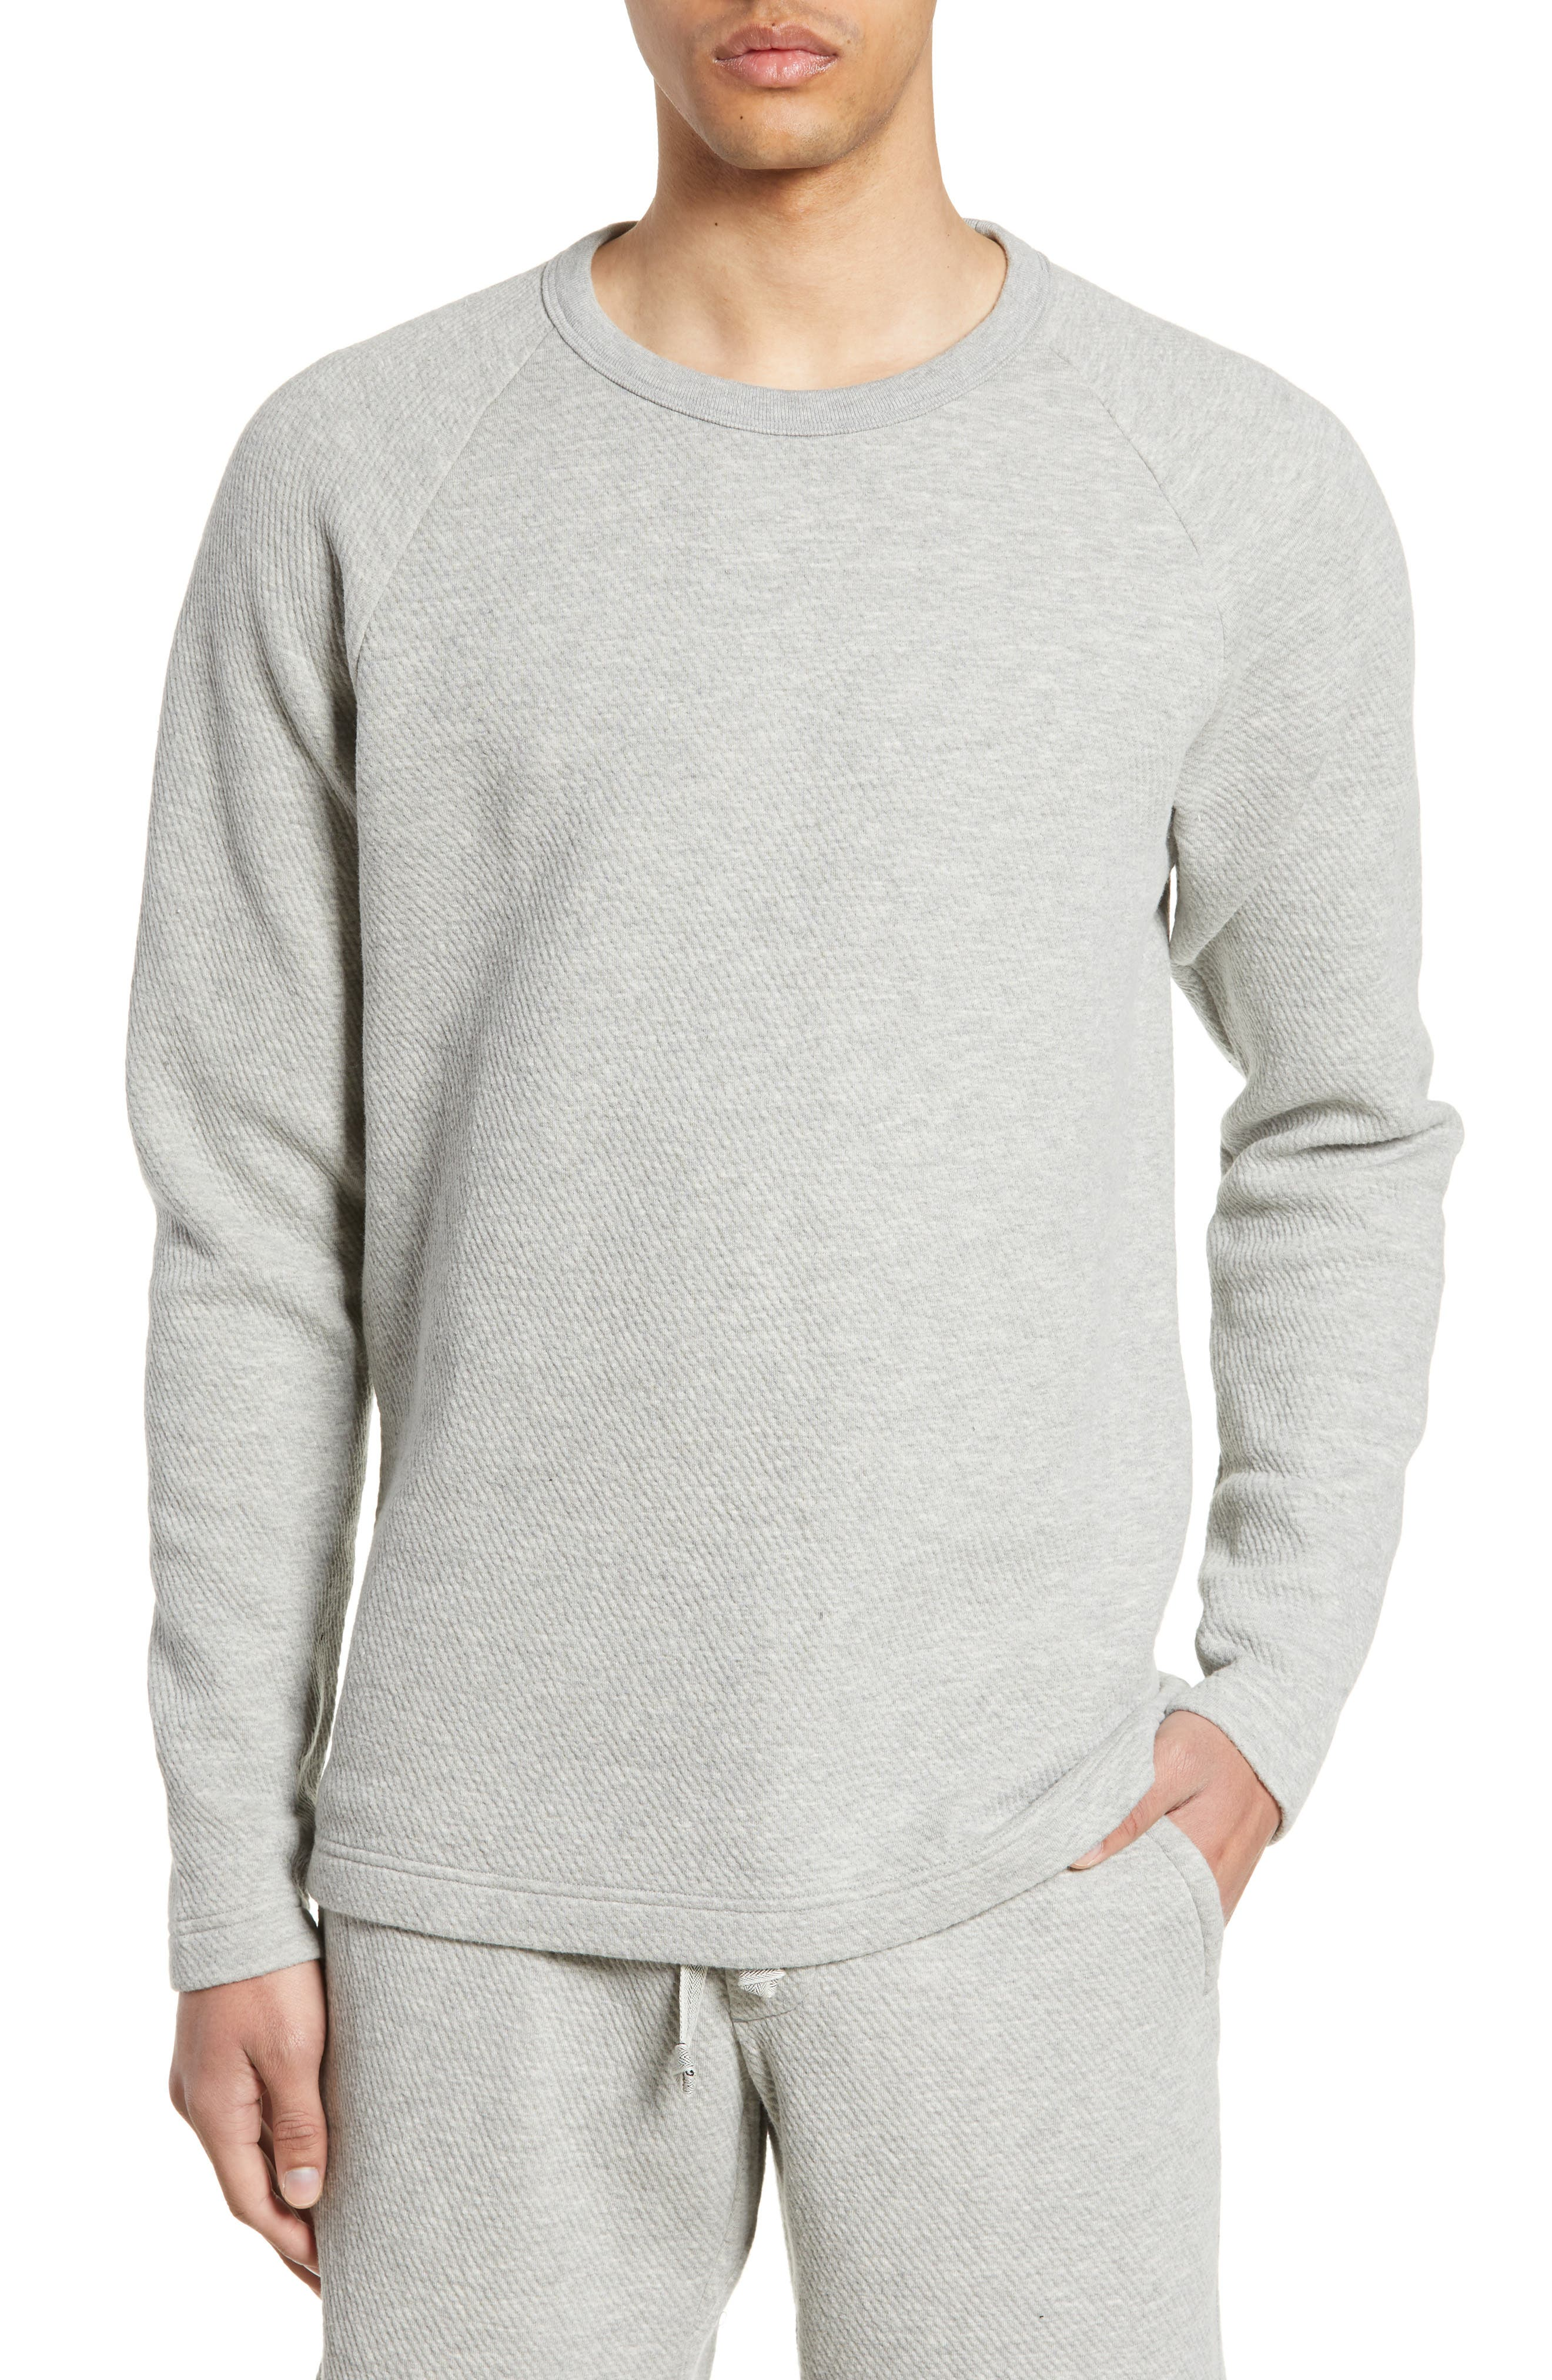 WINGS + HORNS, Vented Sweatshirt, Main thumbnail 1, color, HEATHER GREY